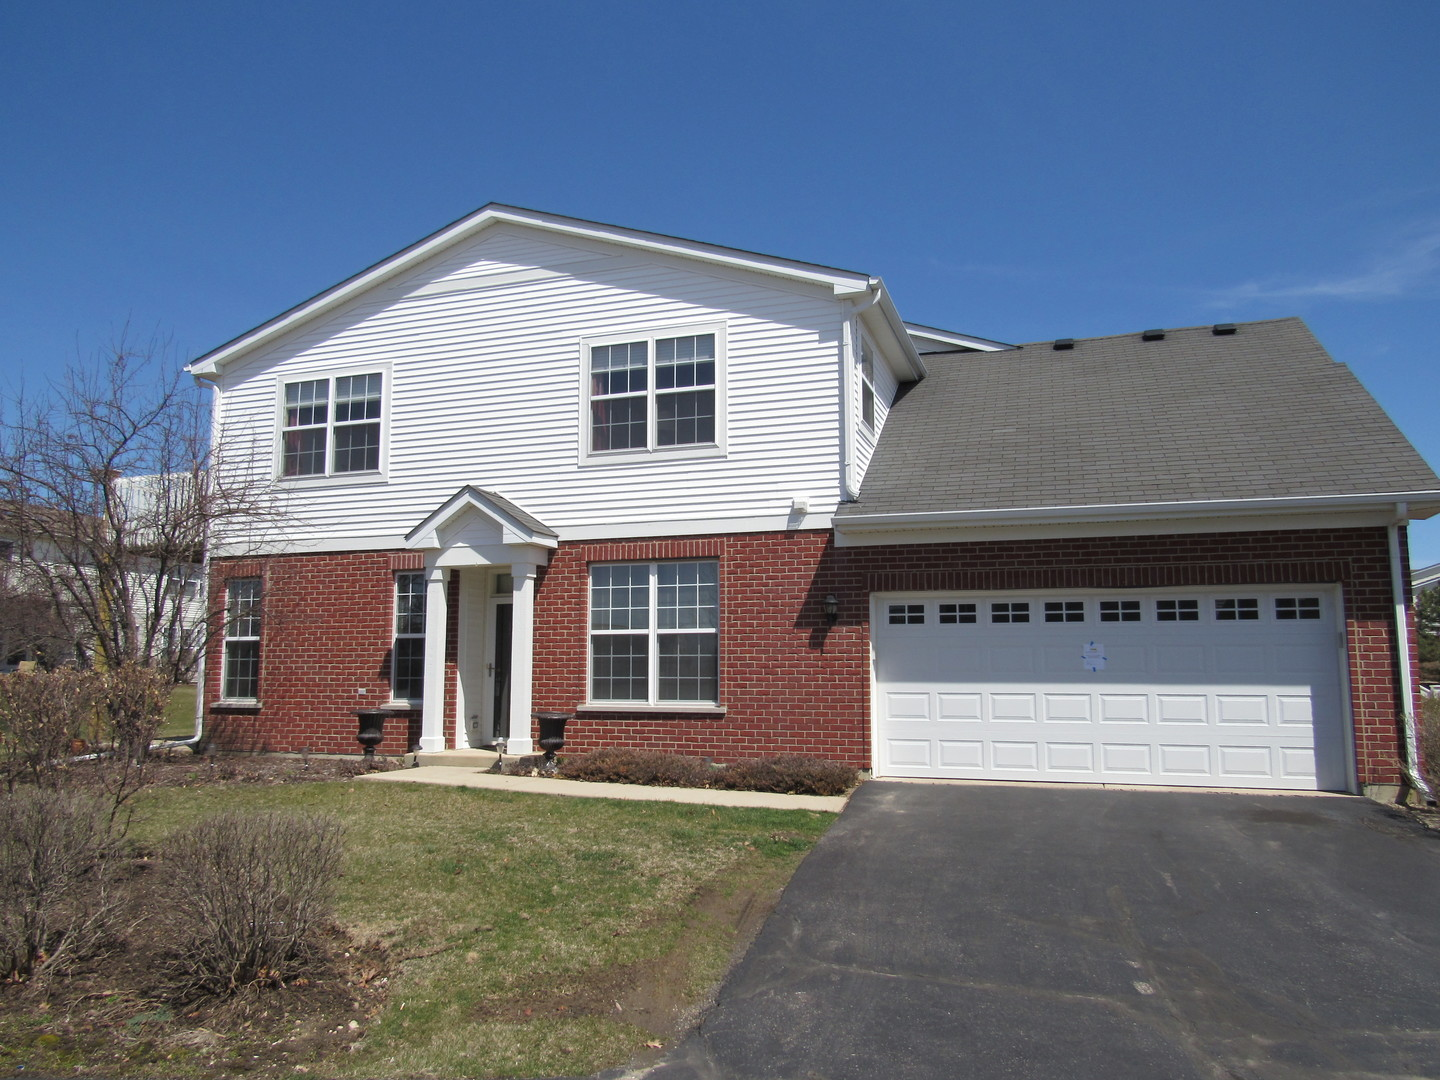 2606 Loren Lane, Algonquin in Kane County, IL 60102 Home for Sale